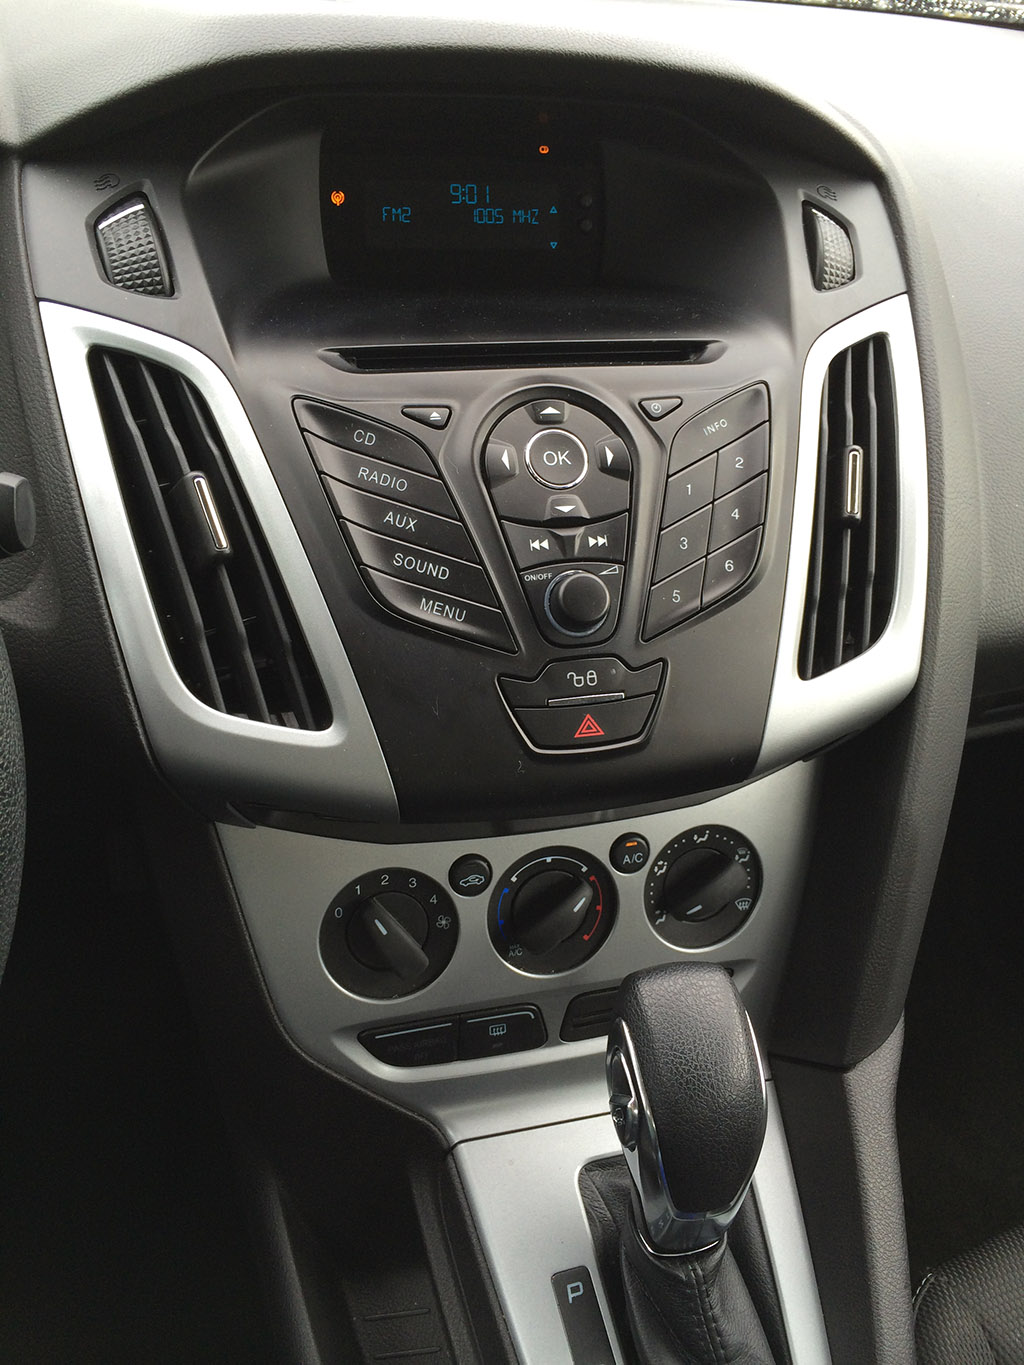 focus ford console sedan center se